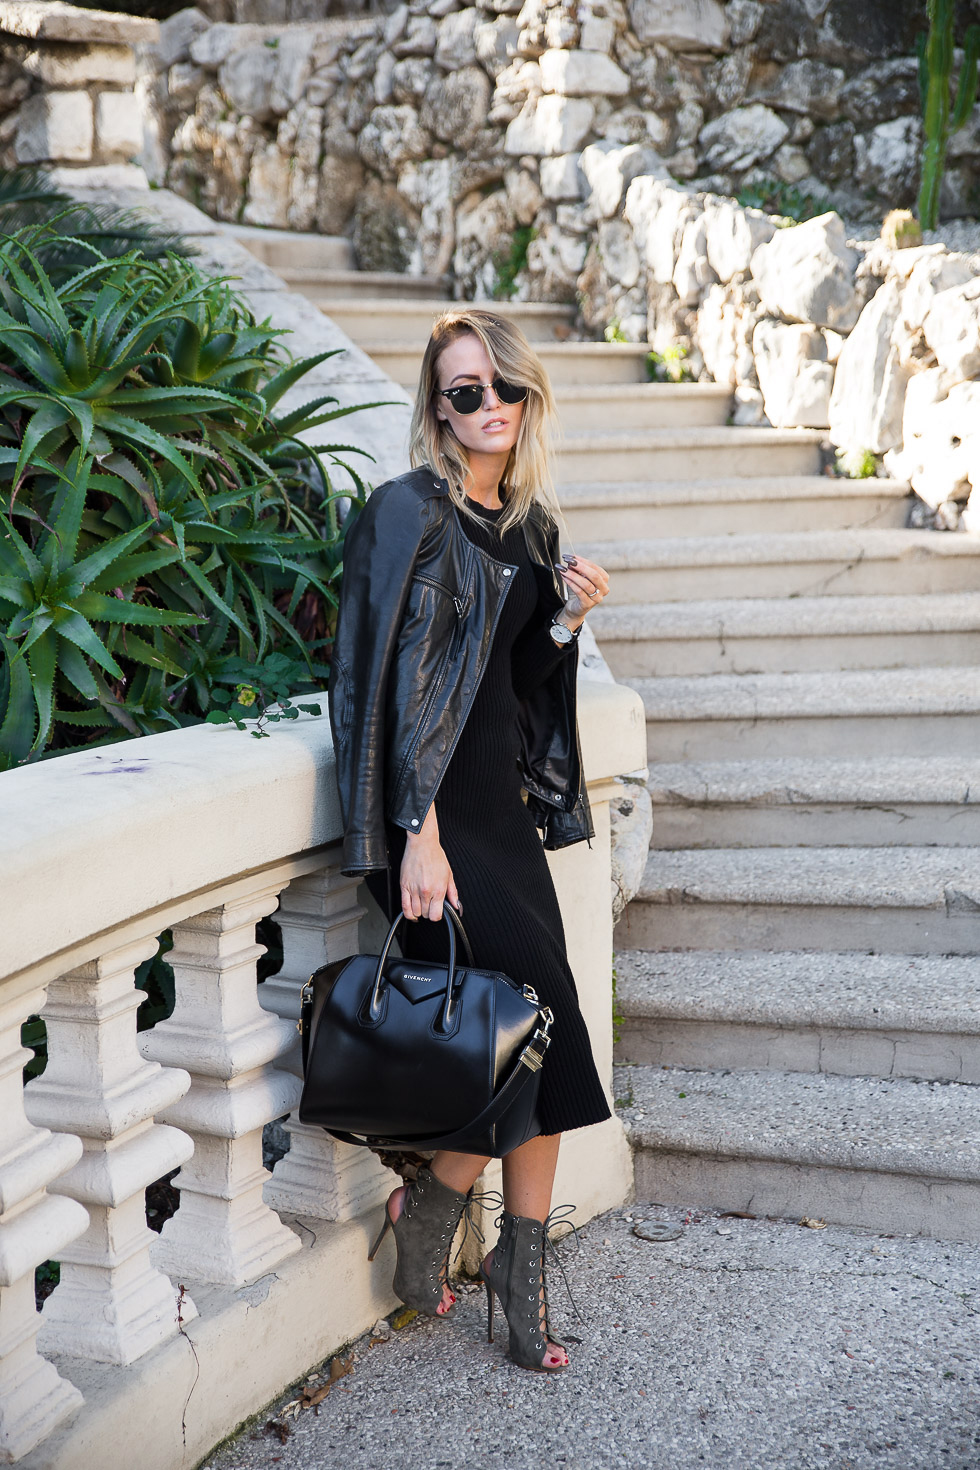 The midi dress trend is going to be huge this season. Wear a black dress with laced stilettos and a leather jacket to recreate the look worn here by Kristin Sundberg. Dress: Gina Tricot, Bag: Givenchy, Shoes: Lamoda, Watch: Waldor.